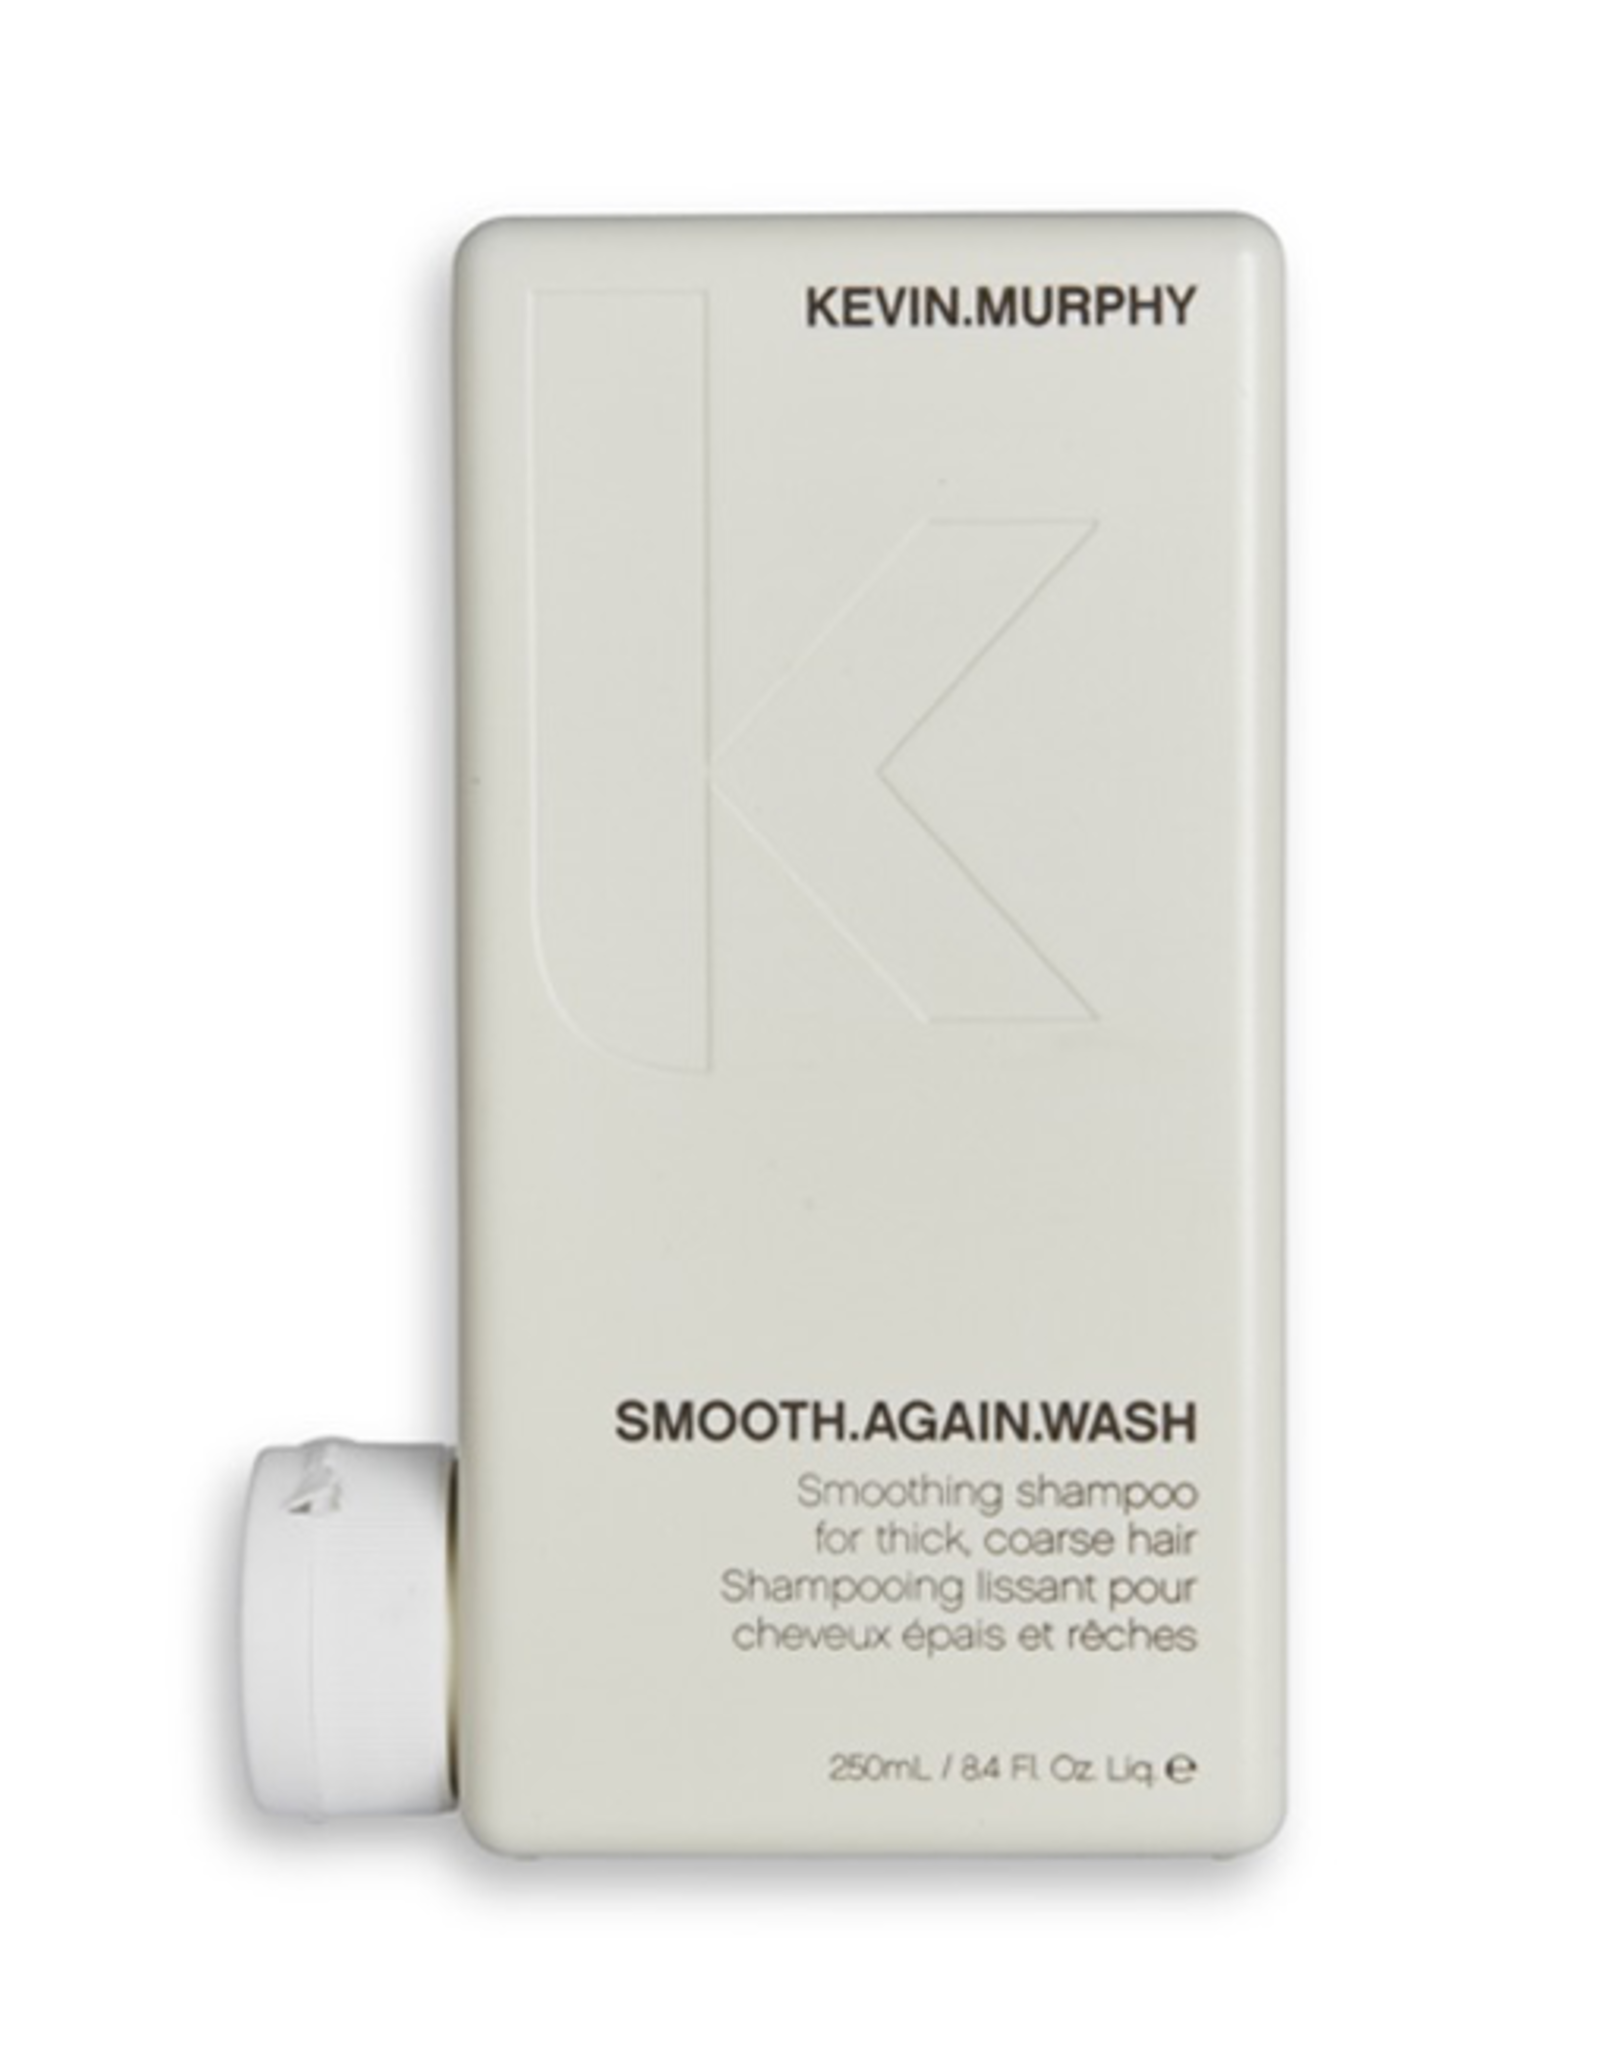 KEVIN.MURPHY Smooth.Again.Wash (250 ml)